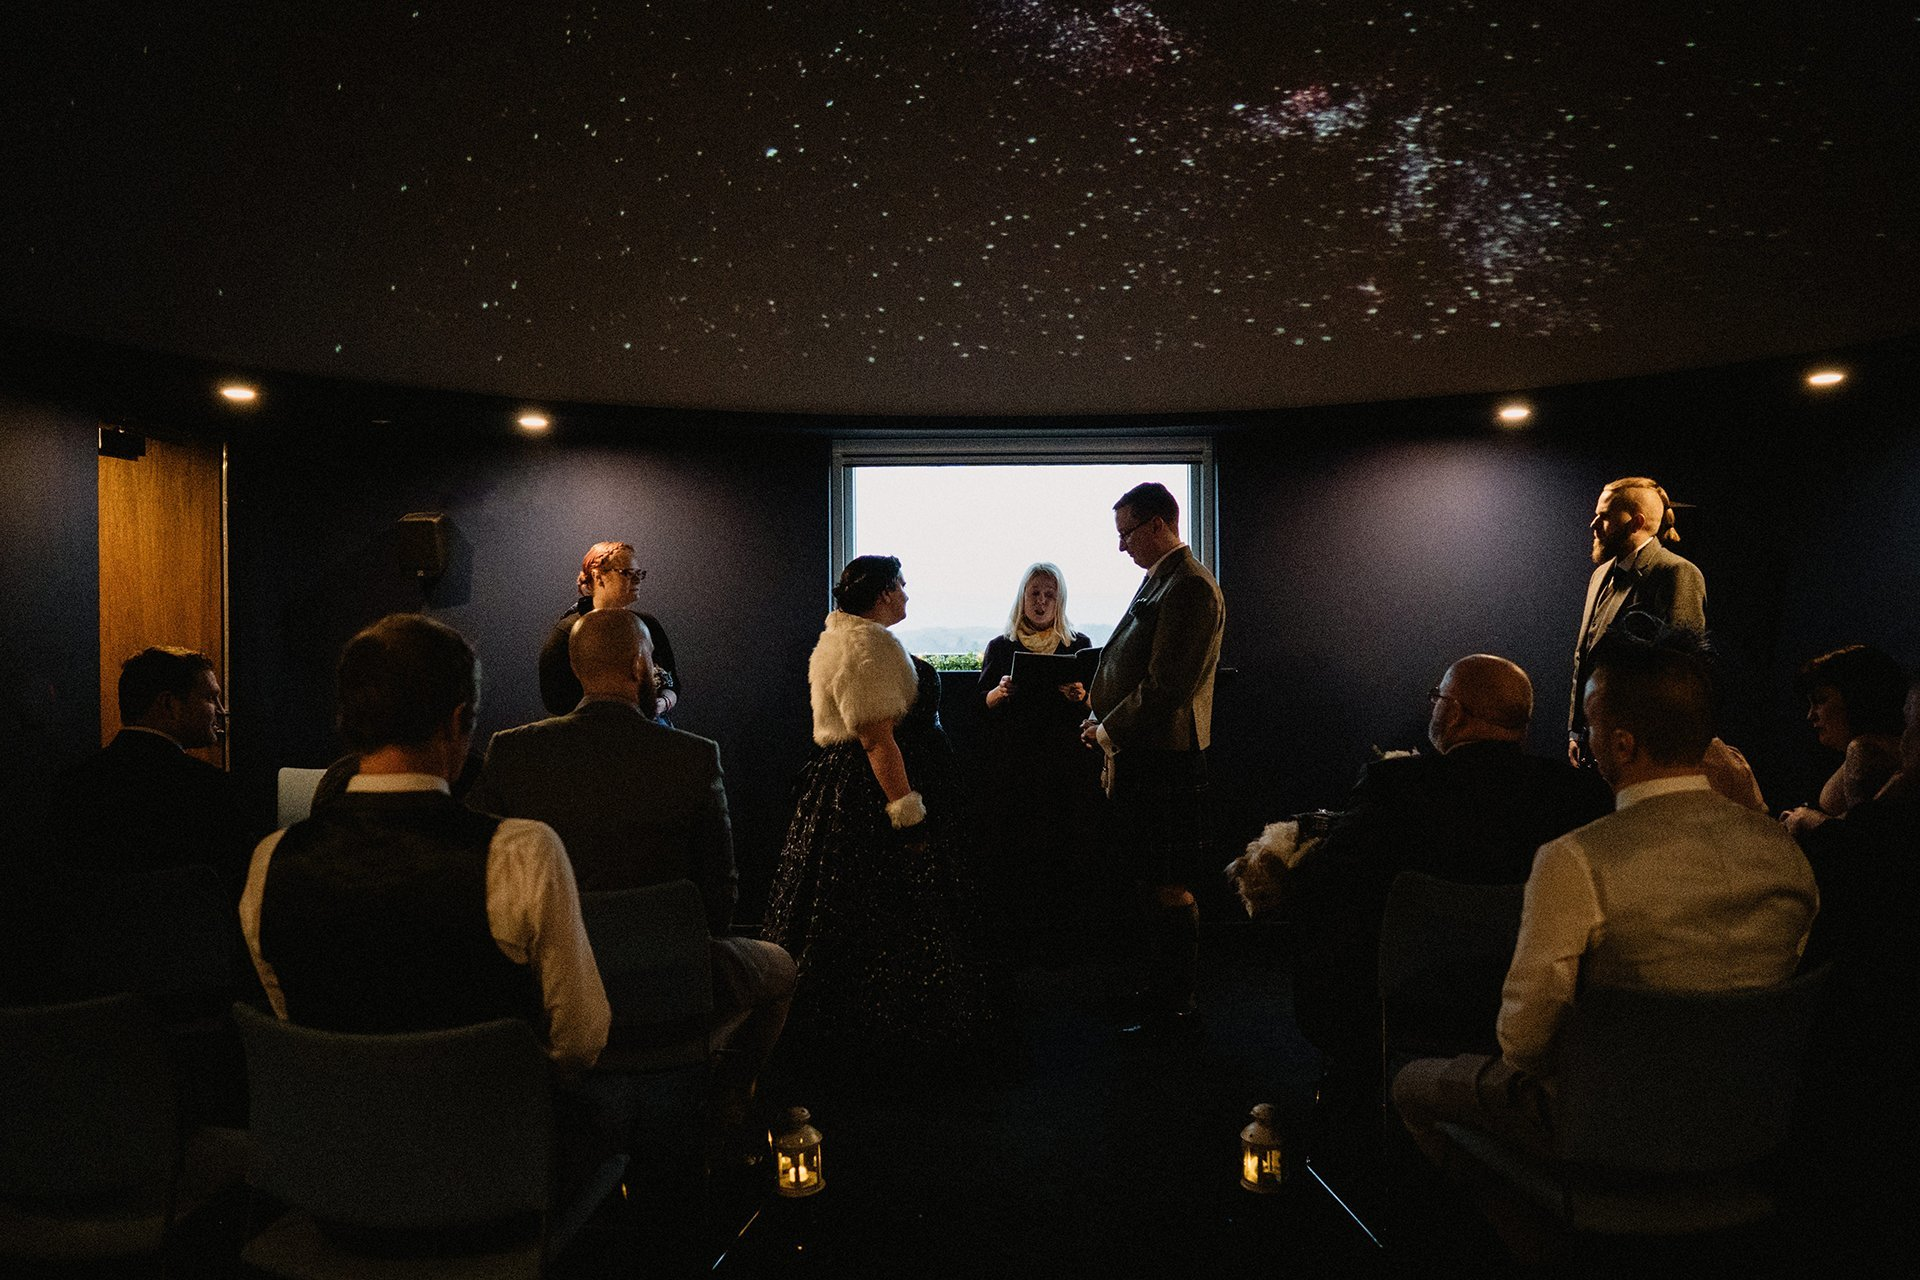 celestial wedding ceremony, humanist planetarium ceremony at the scottish dark sky observatory